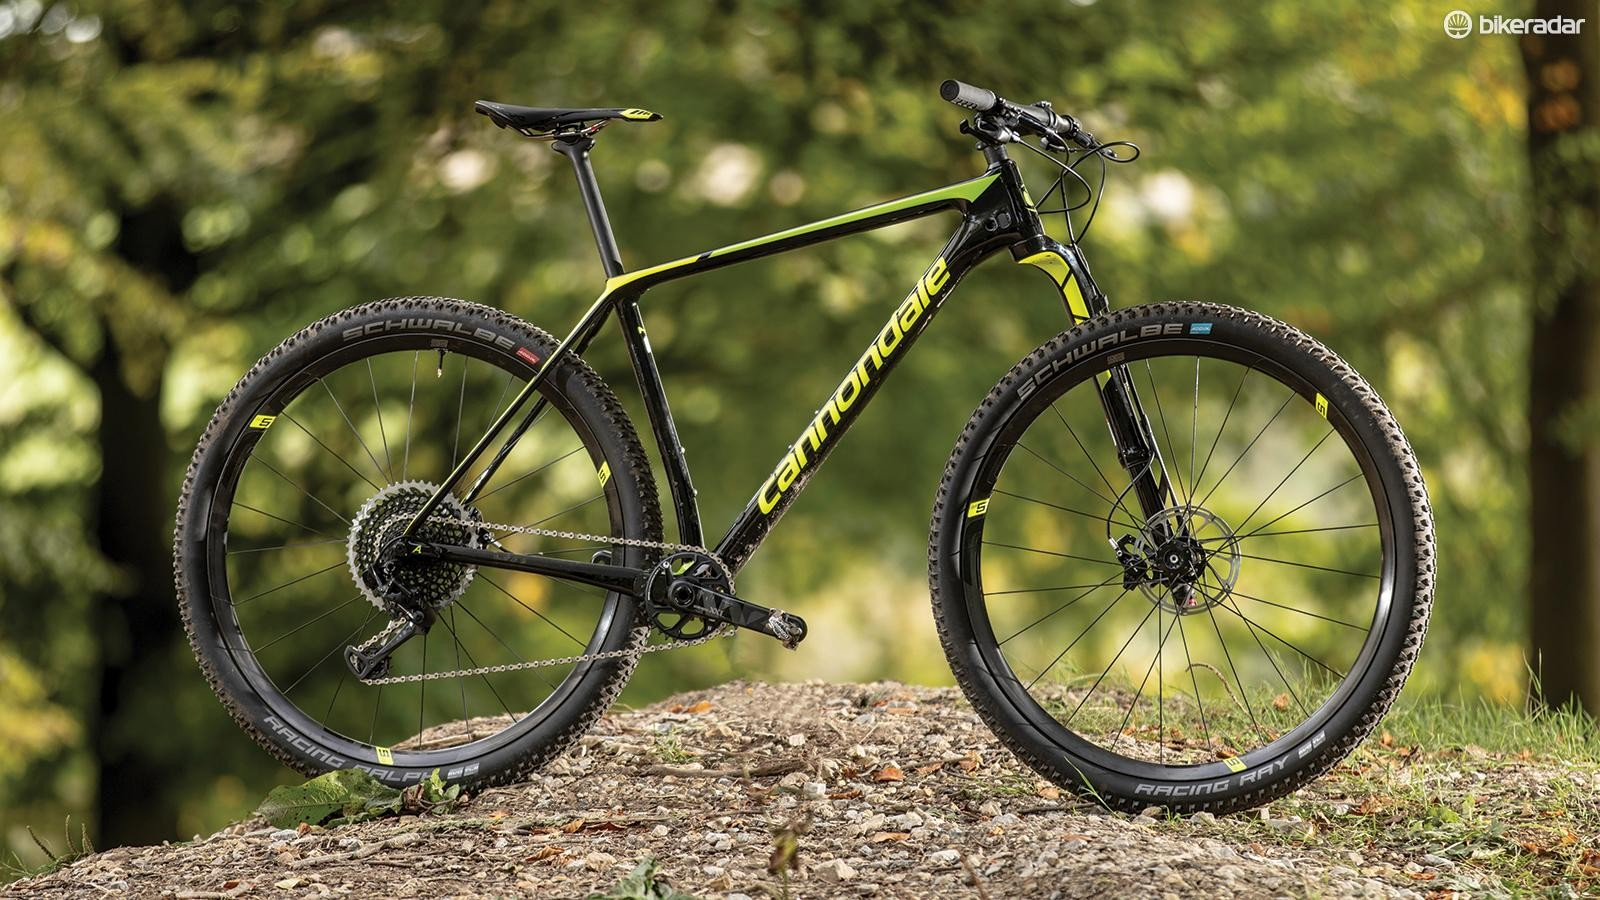 Few bikes can turn heads like Cannondale's latest F-Si